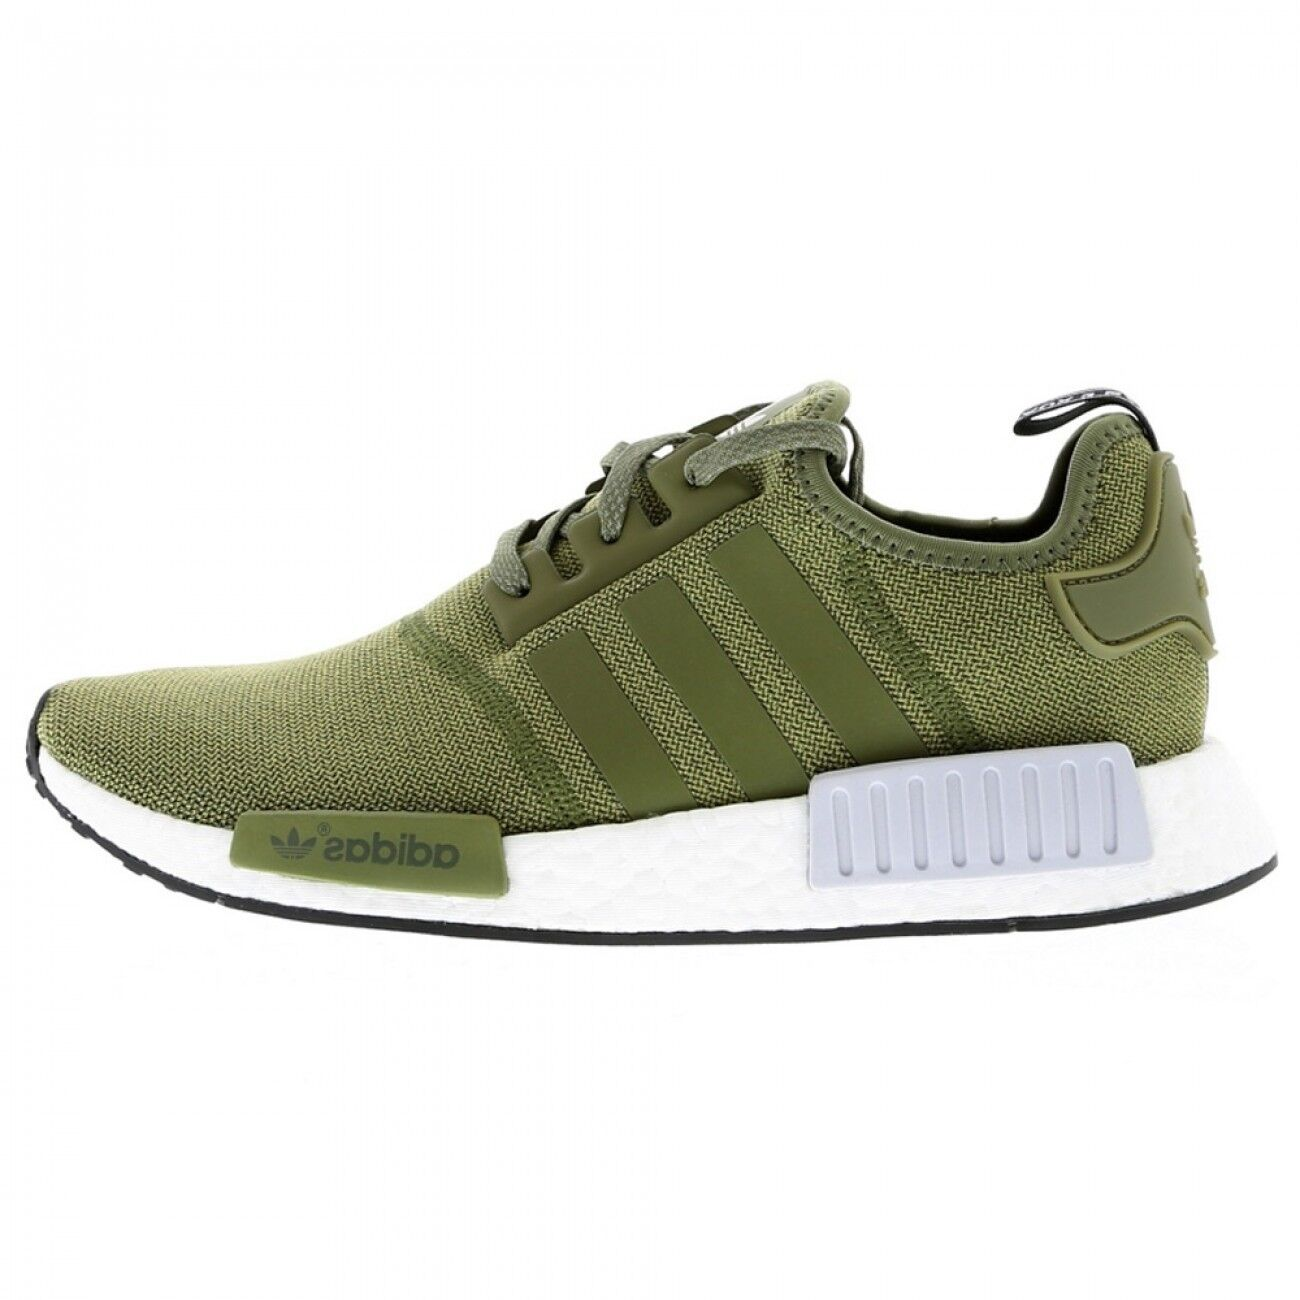 NEW ADIDAS NMD R1 UK7 ~ ~ ~ SIZE 40 2/3 KHAKI OLIVE GREEN